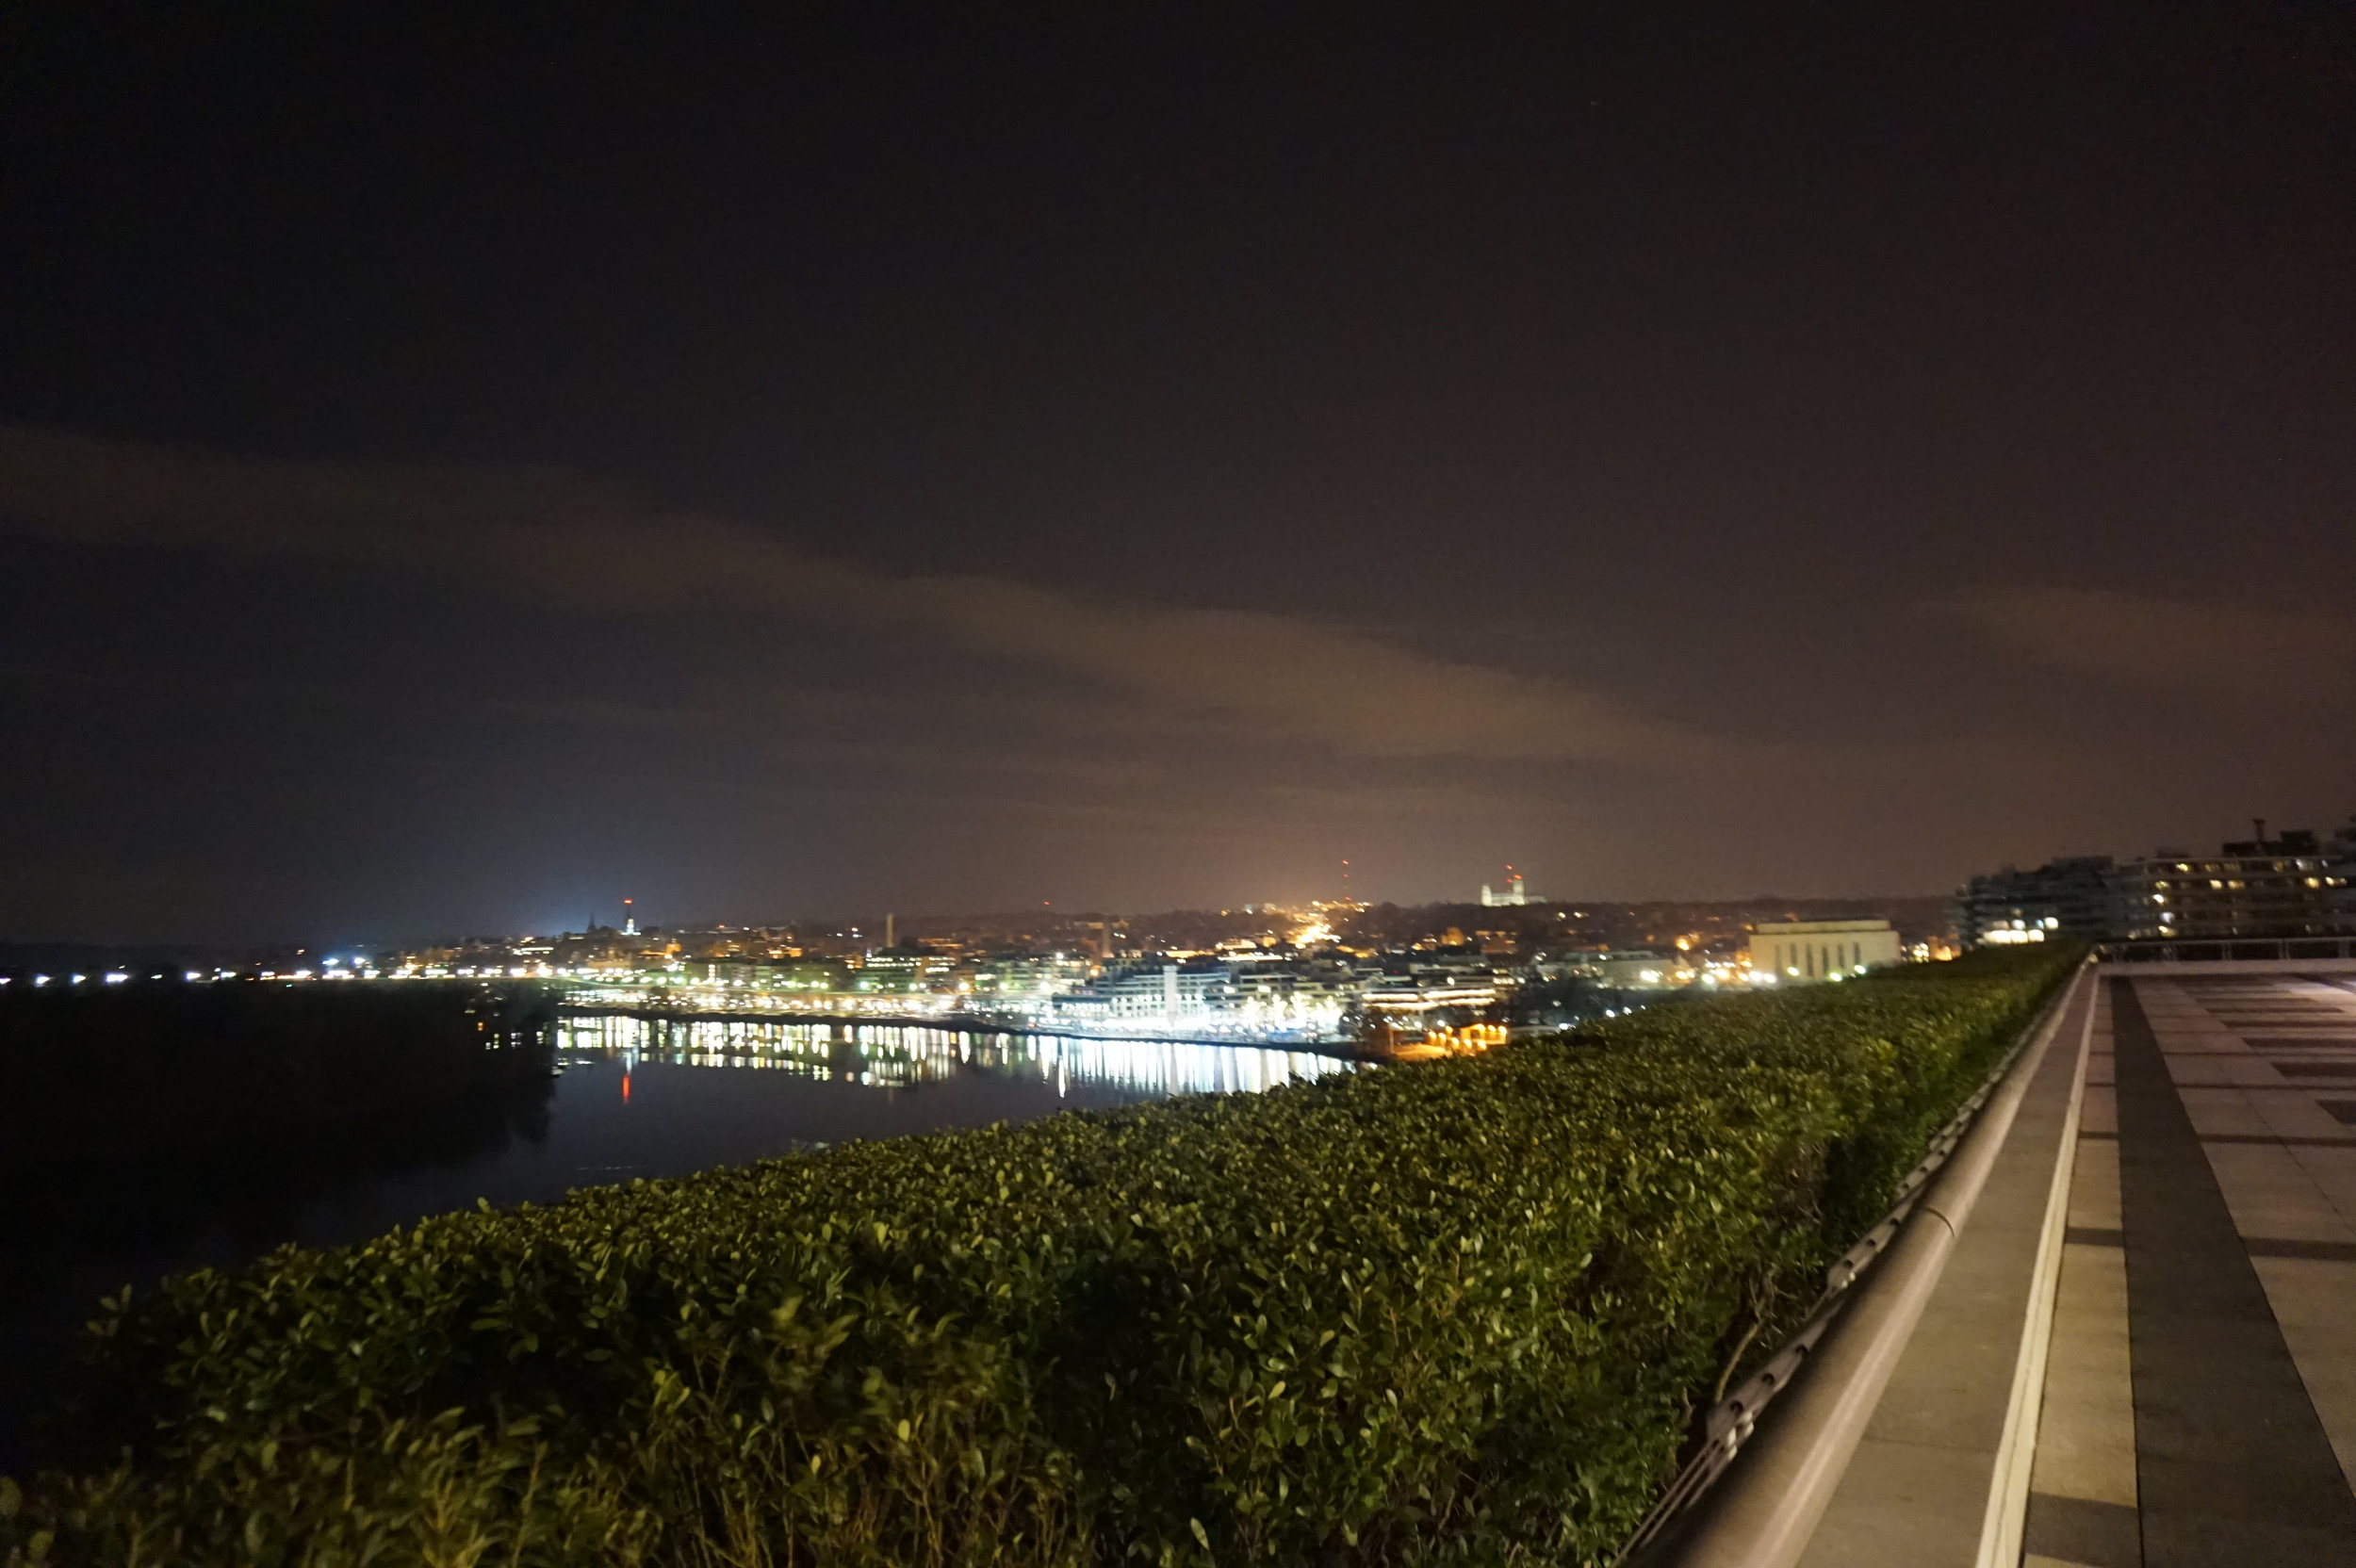 Overlooking Georgetown at night